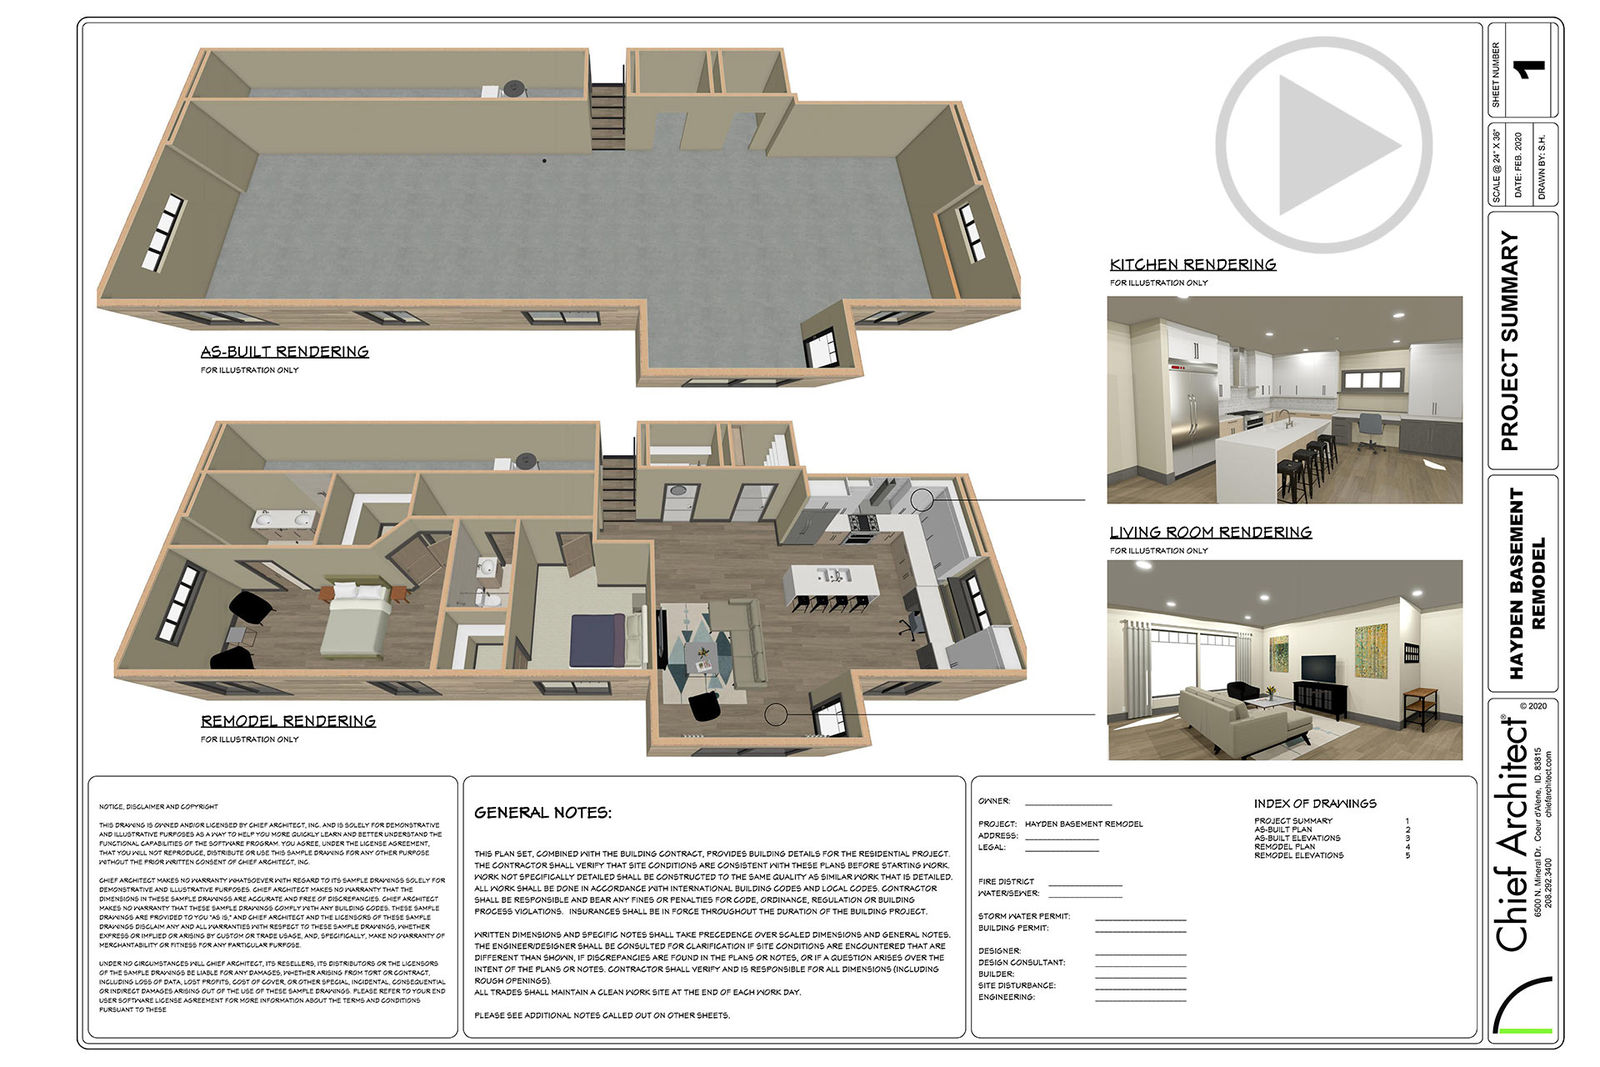 Basement remodel renderings and construction notes